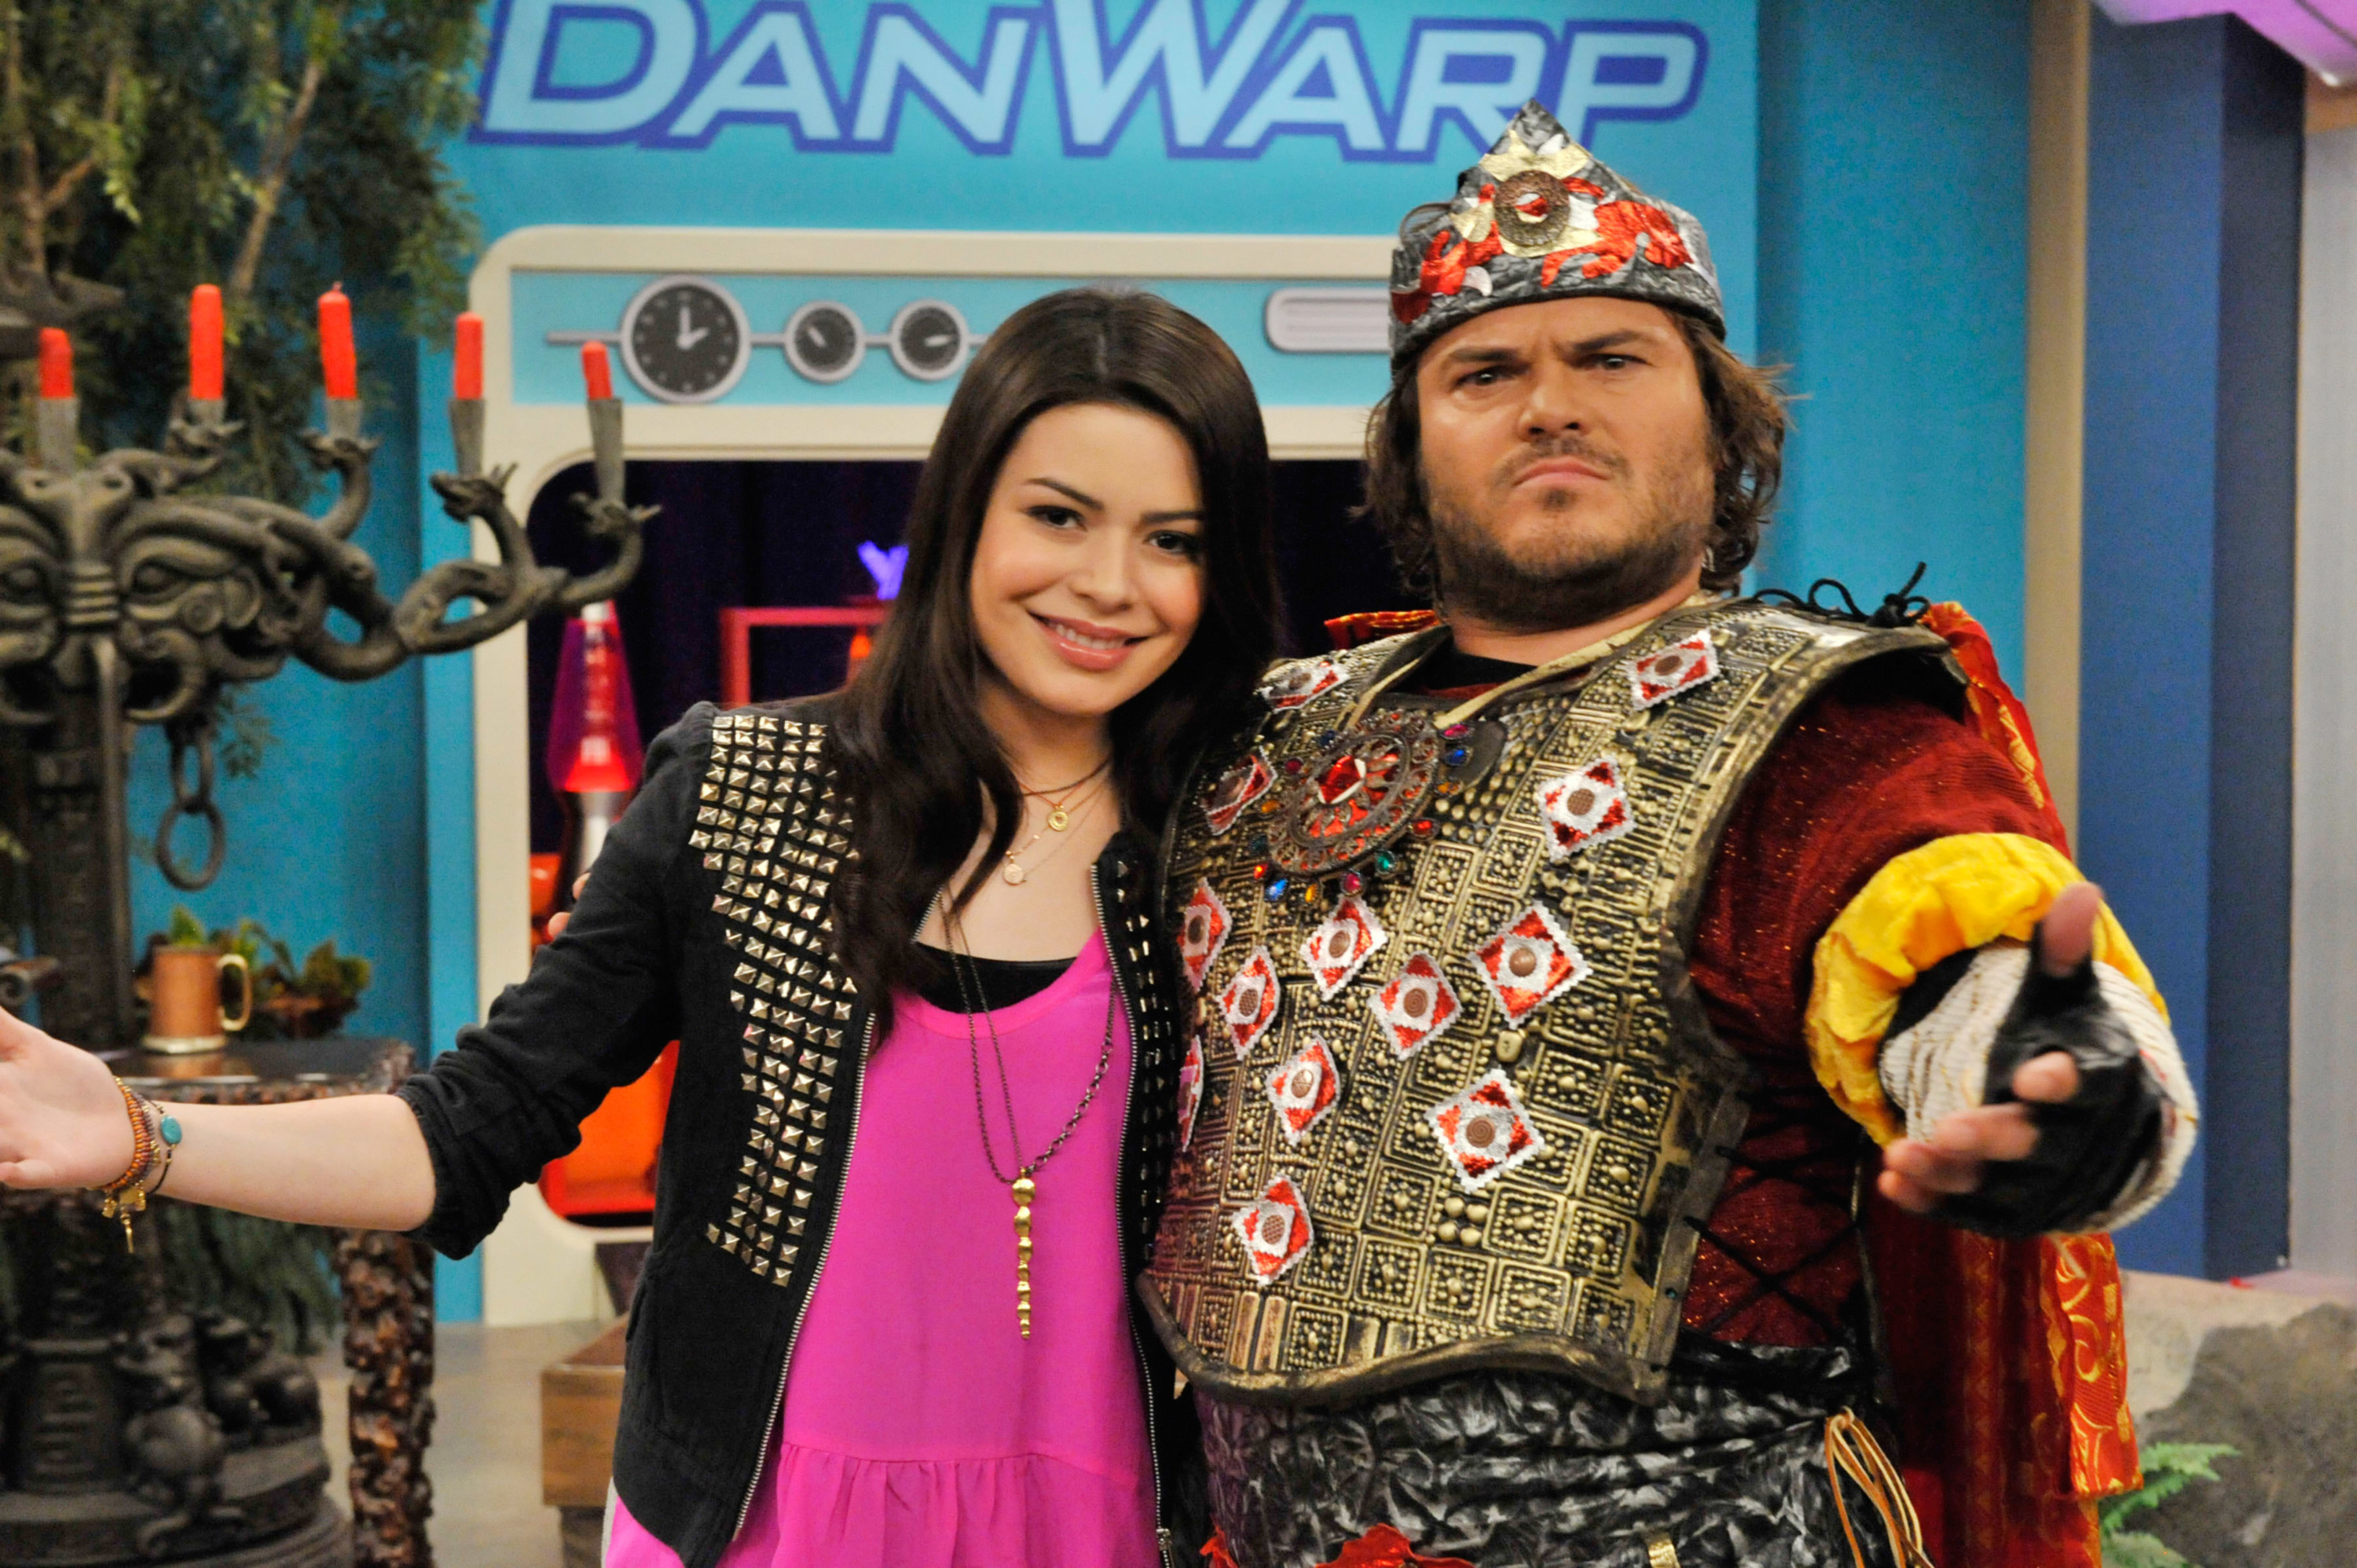 Carly poses for a photo with Jack Black, who is dressed in medieval attire for his character